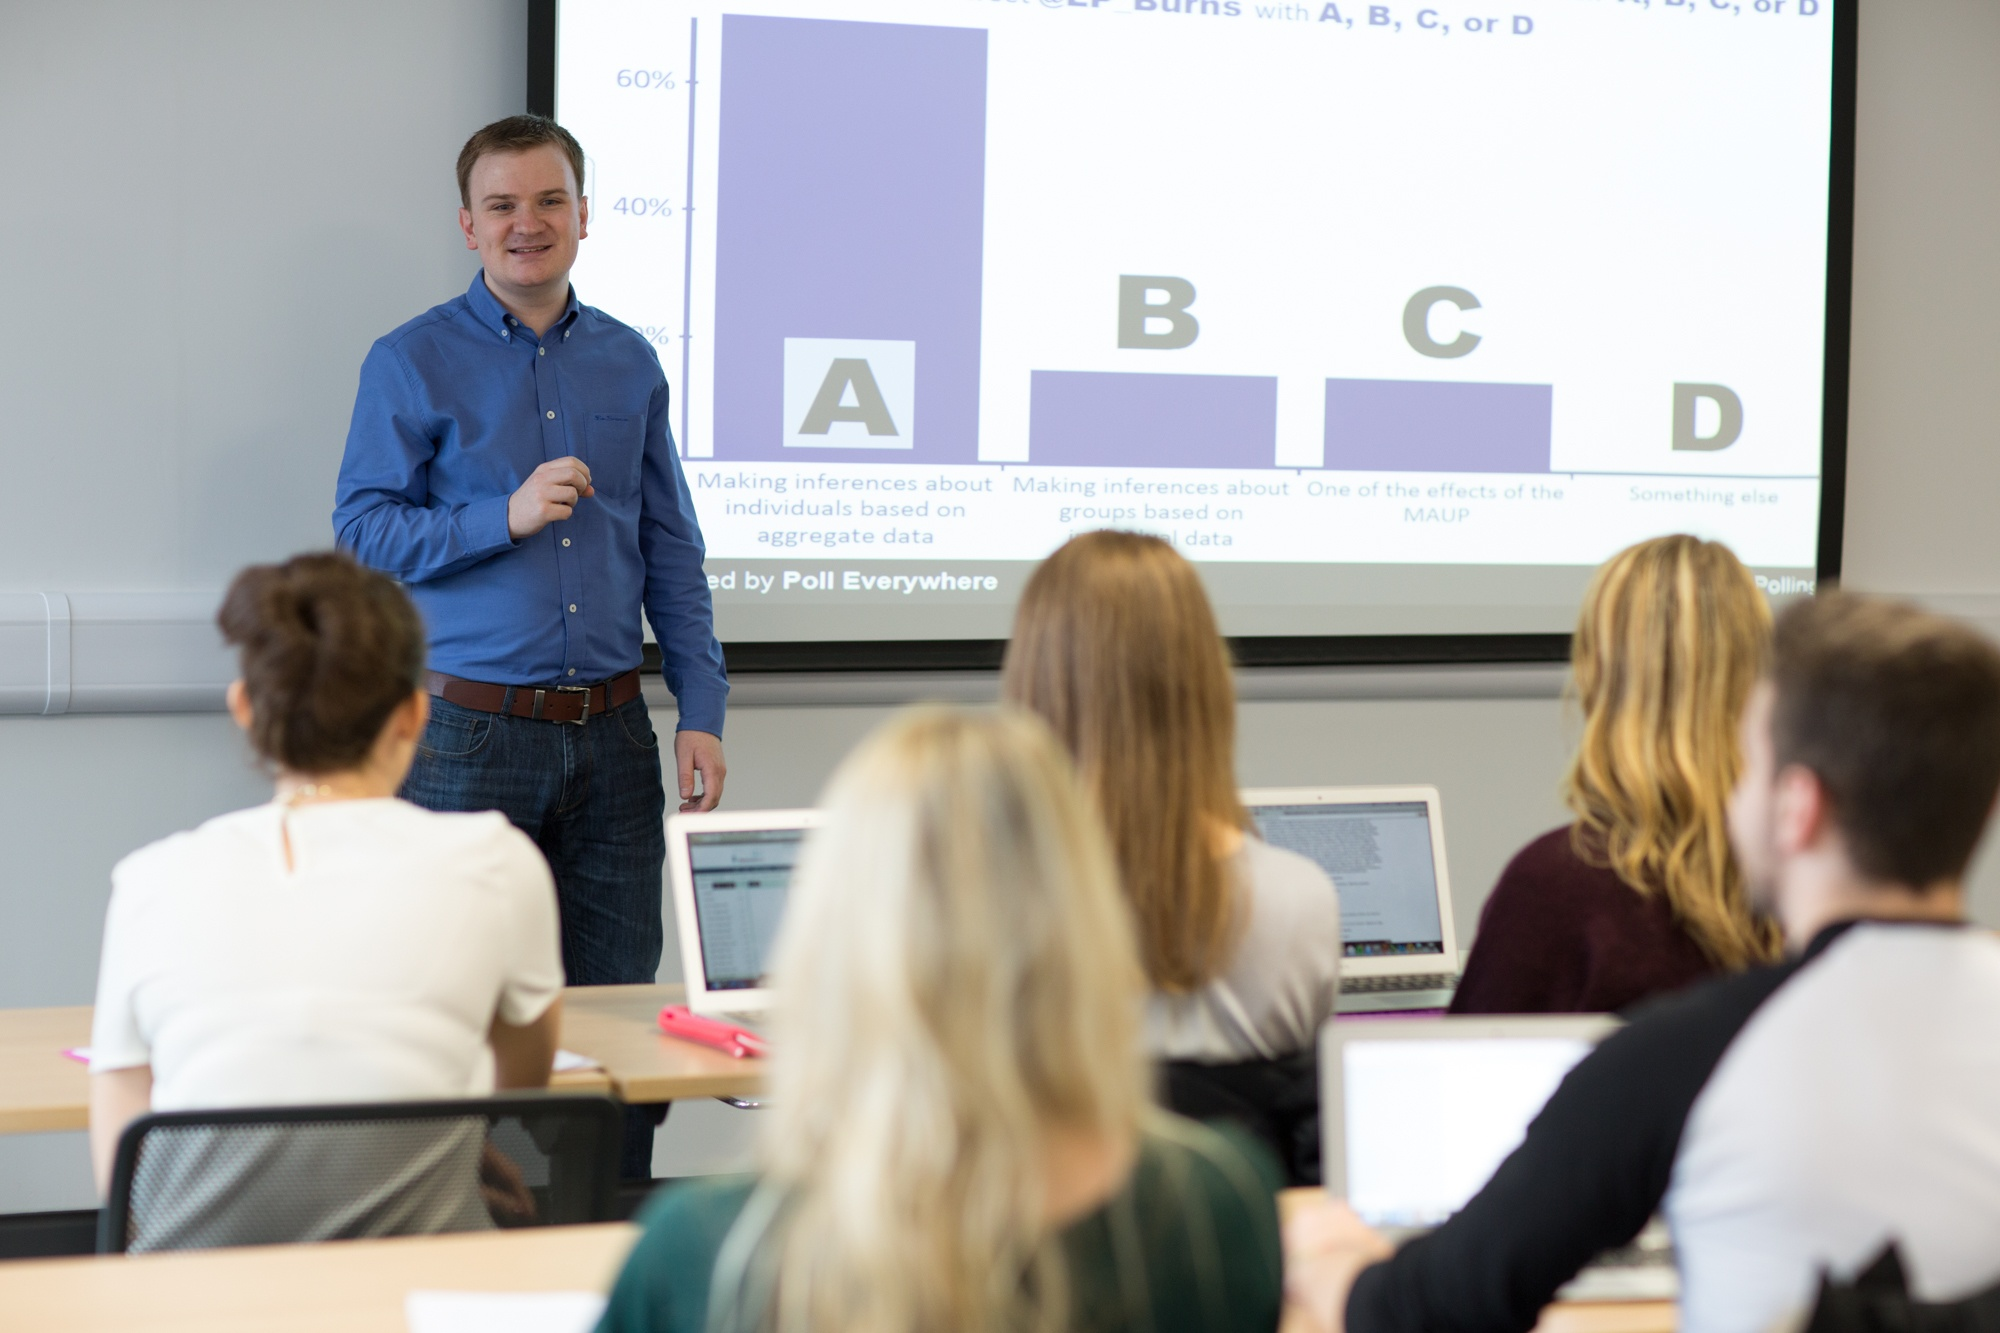 My Job in Higher Ed with Dr Luke Burns - Lecturer and Deputy Director at University of Leeds